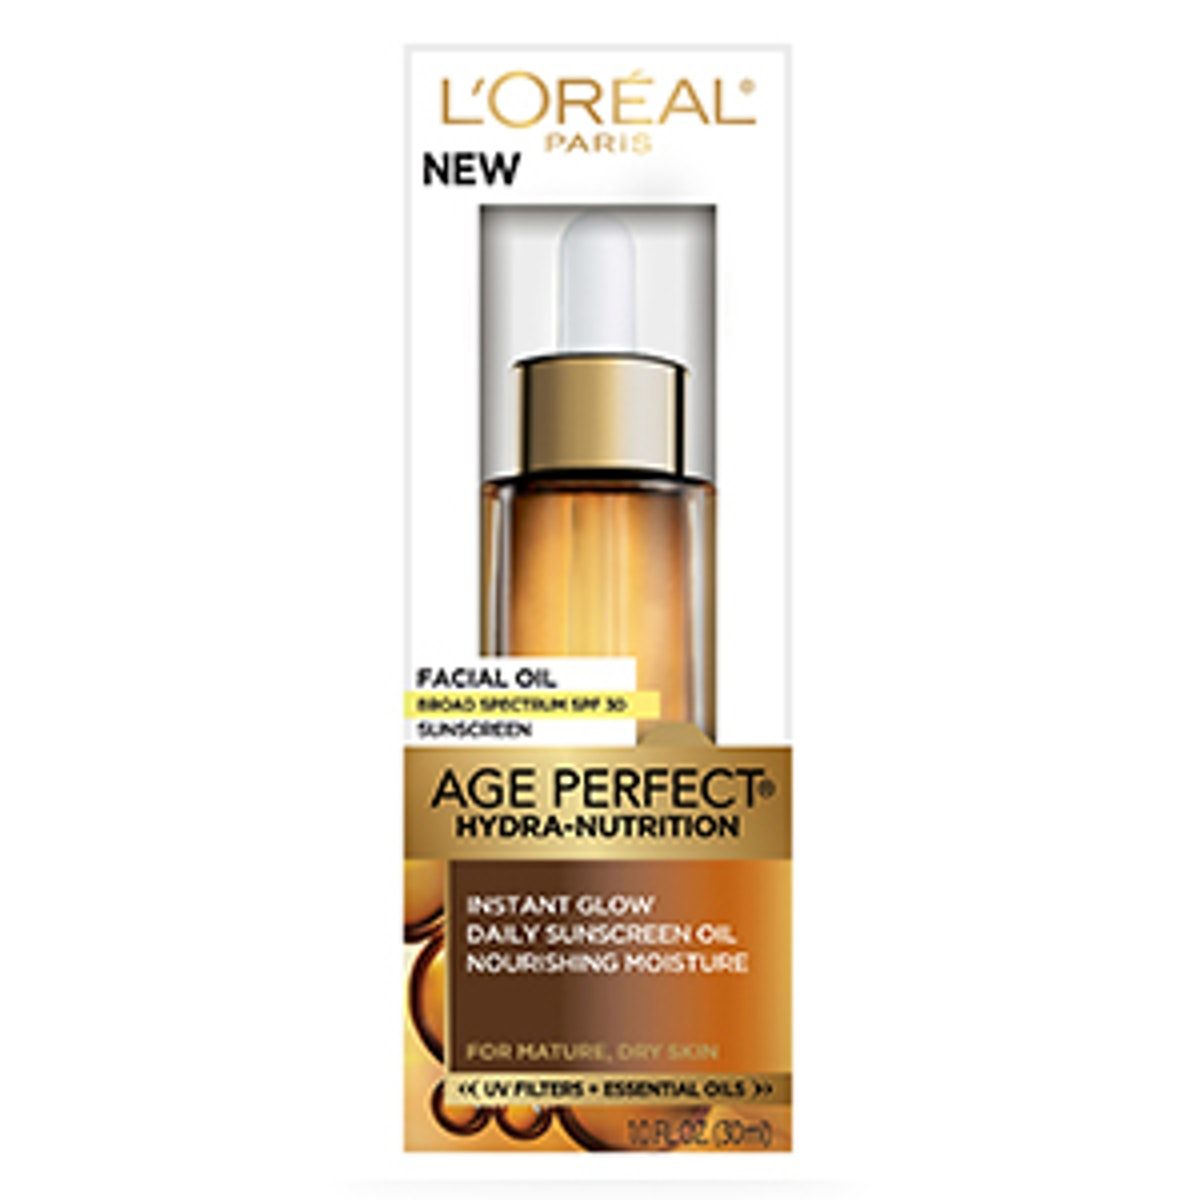 Age Perfect Hydra-Nutrition Facial Oil with SPF 30